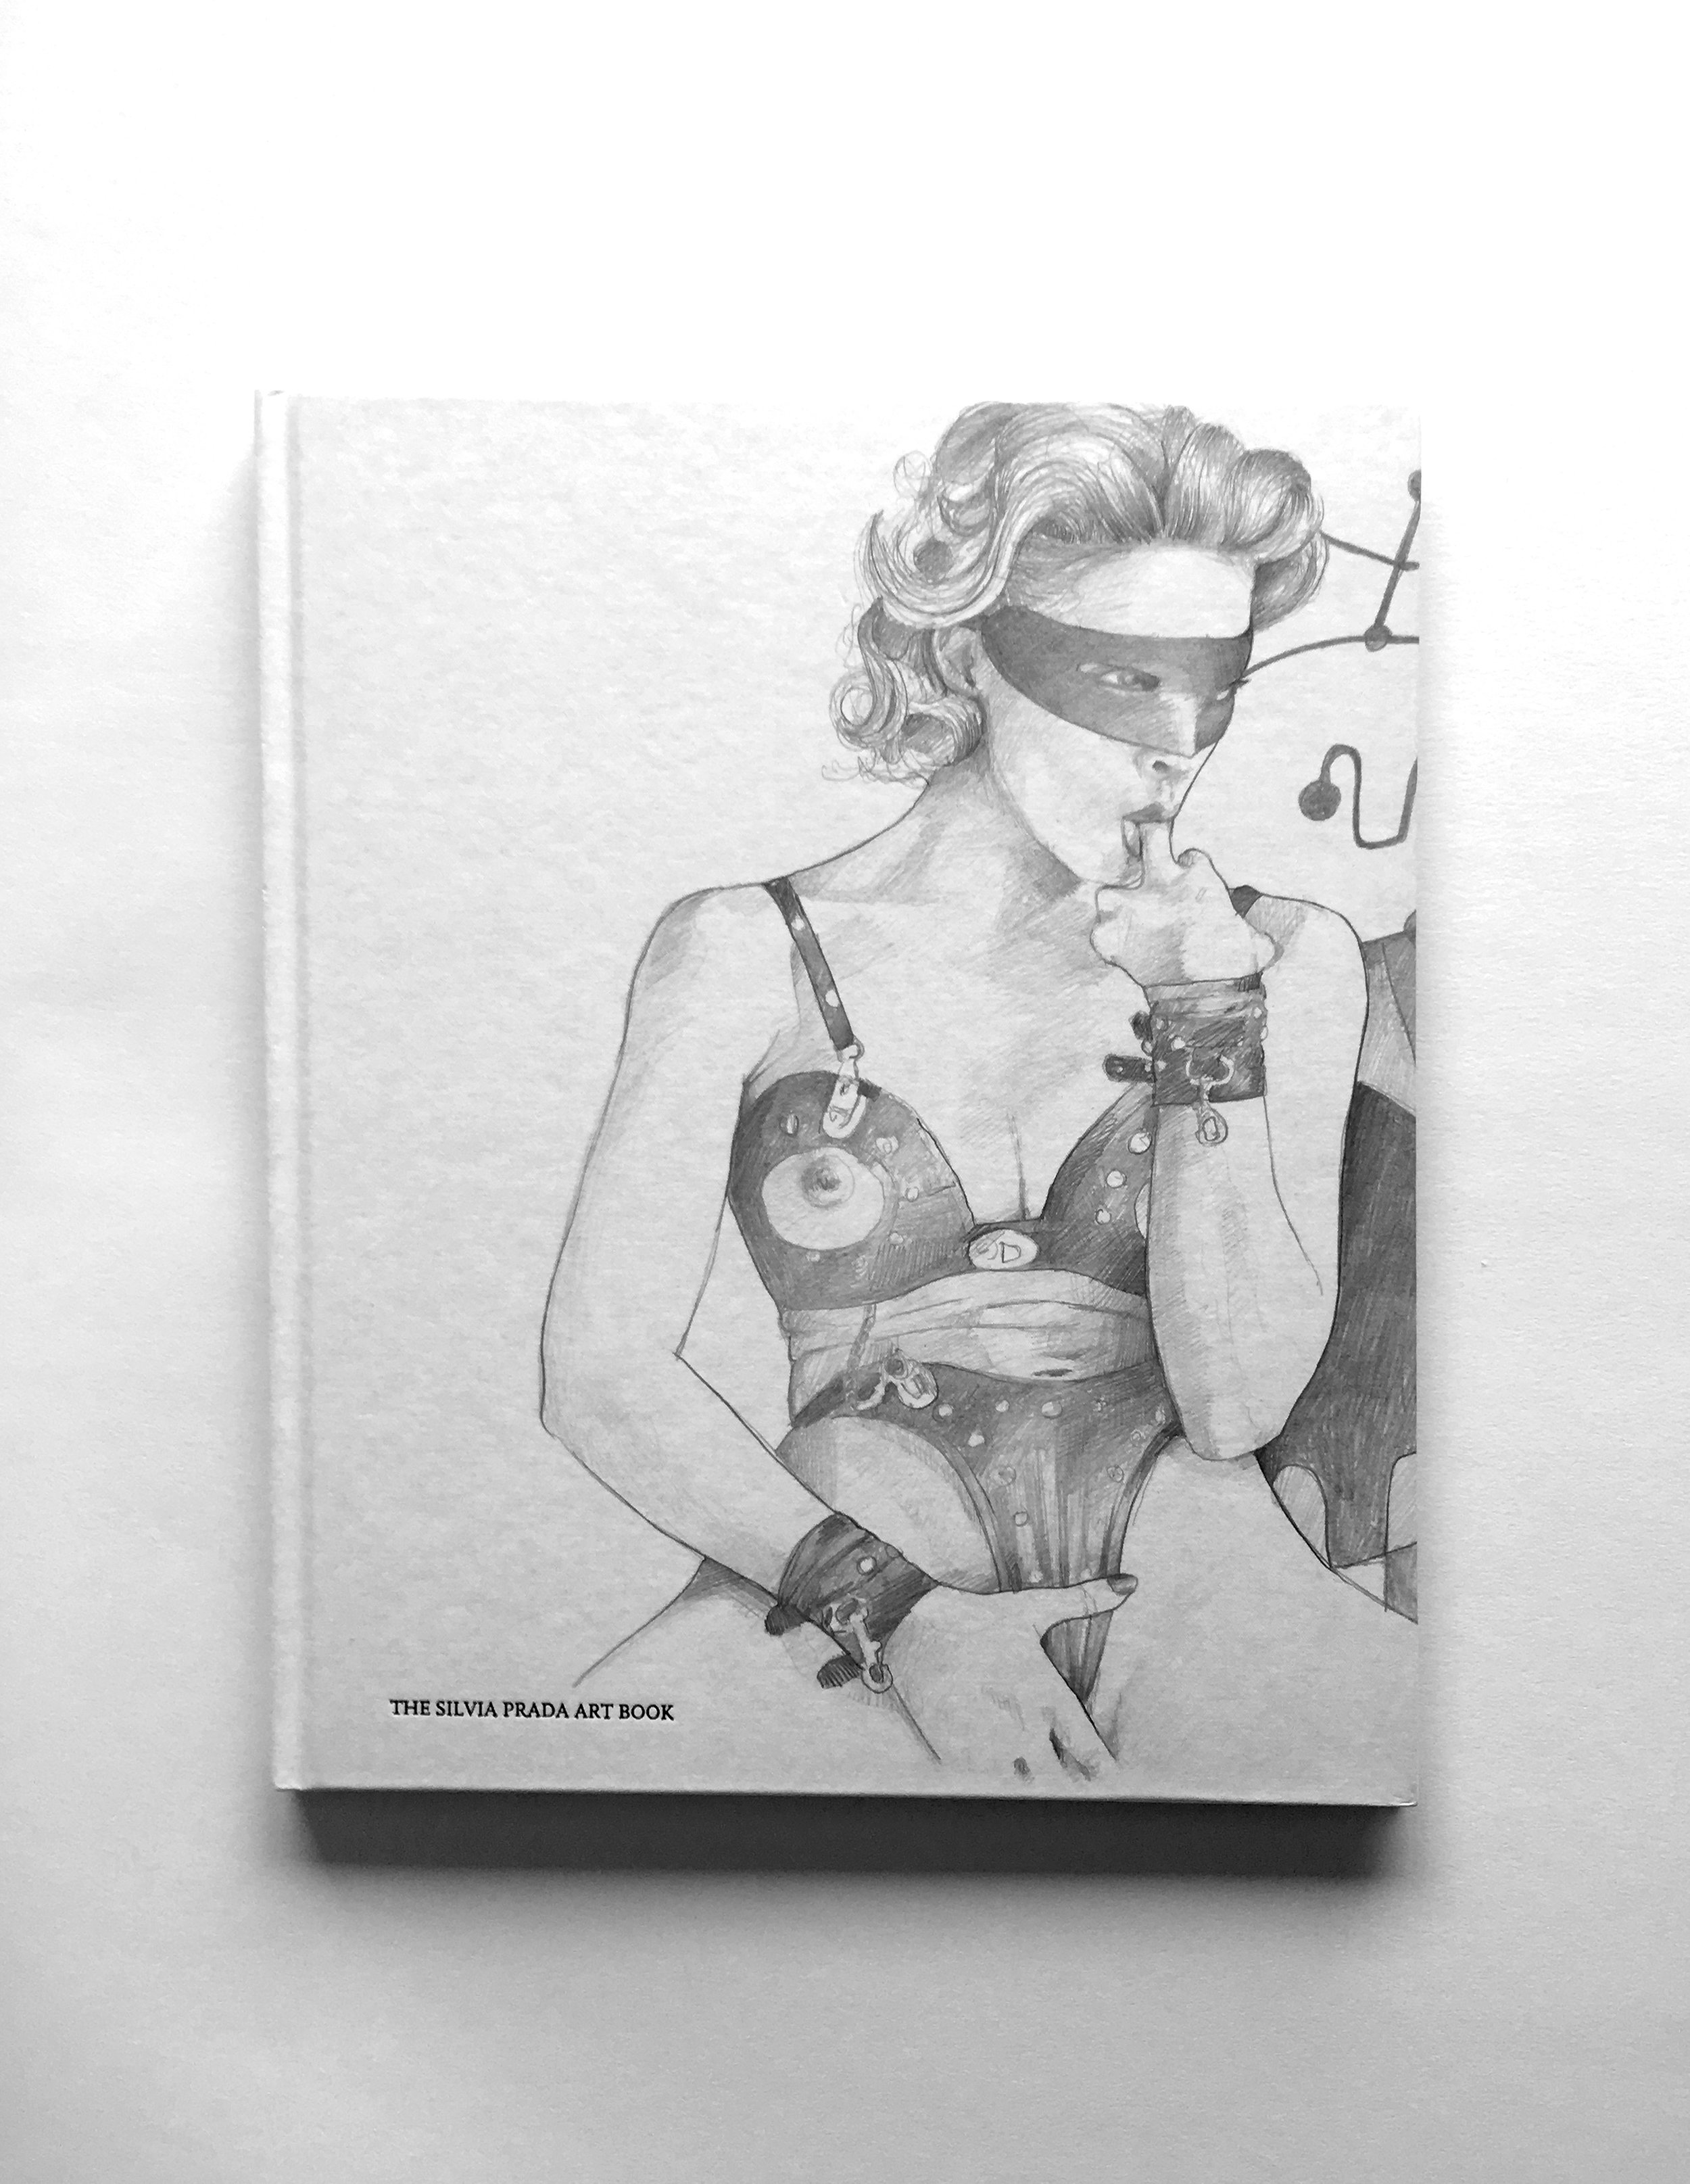 The Silvia Prada Art Book